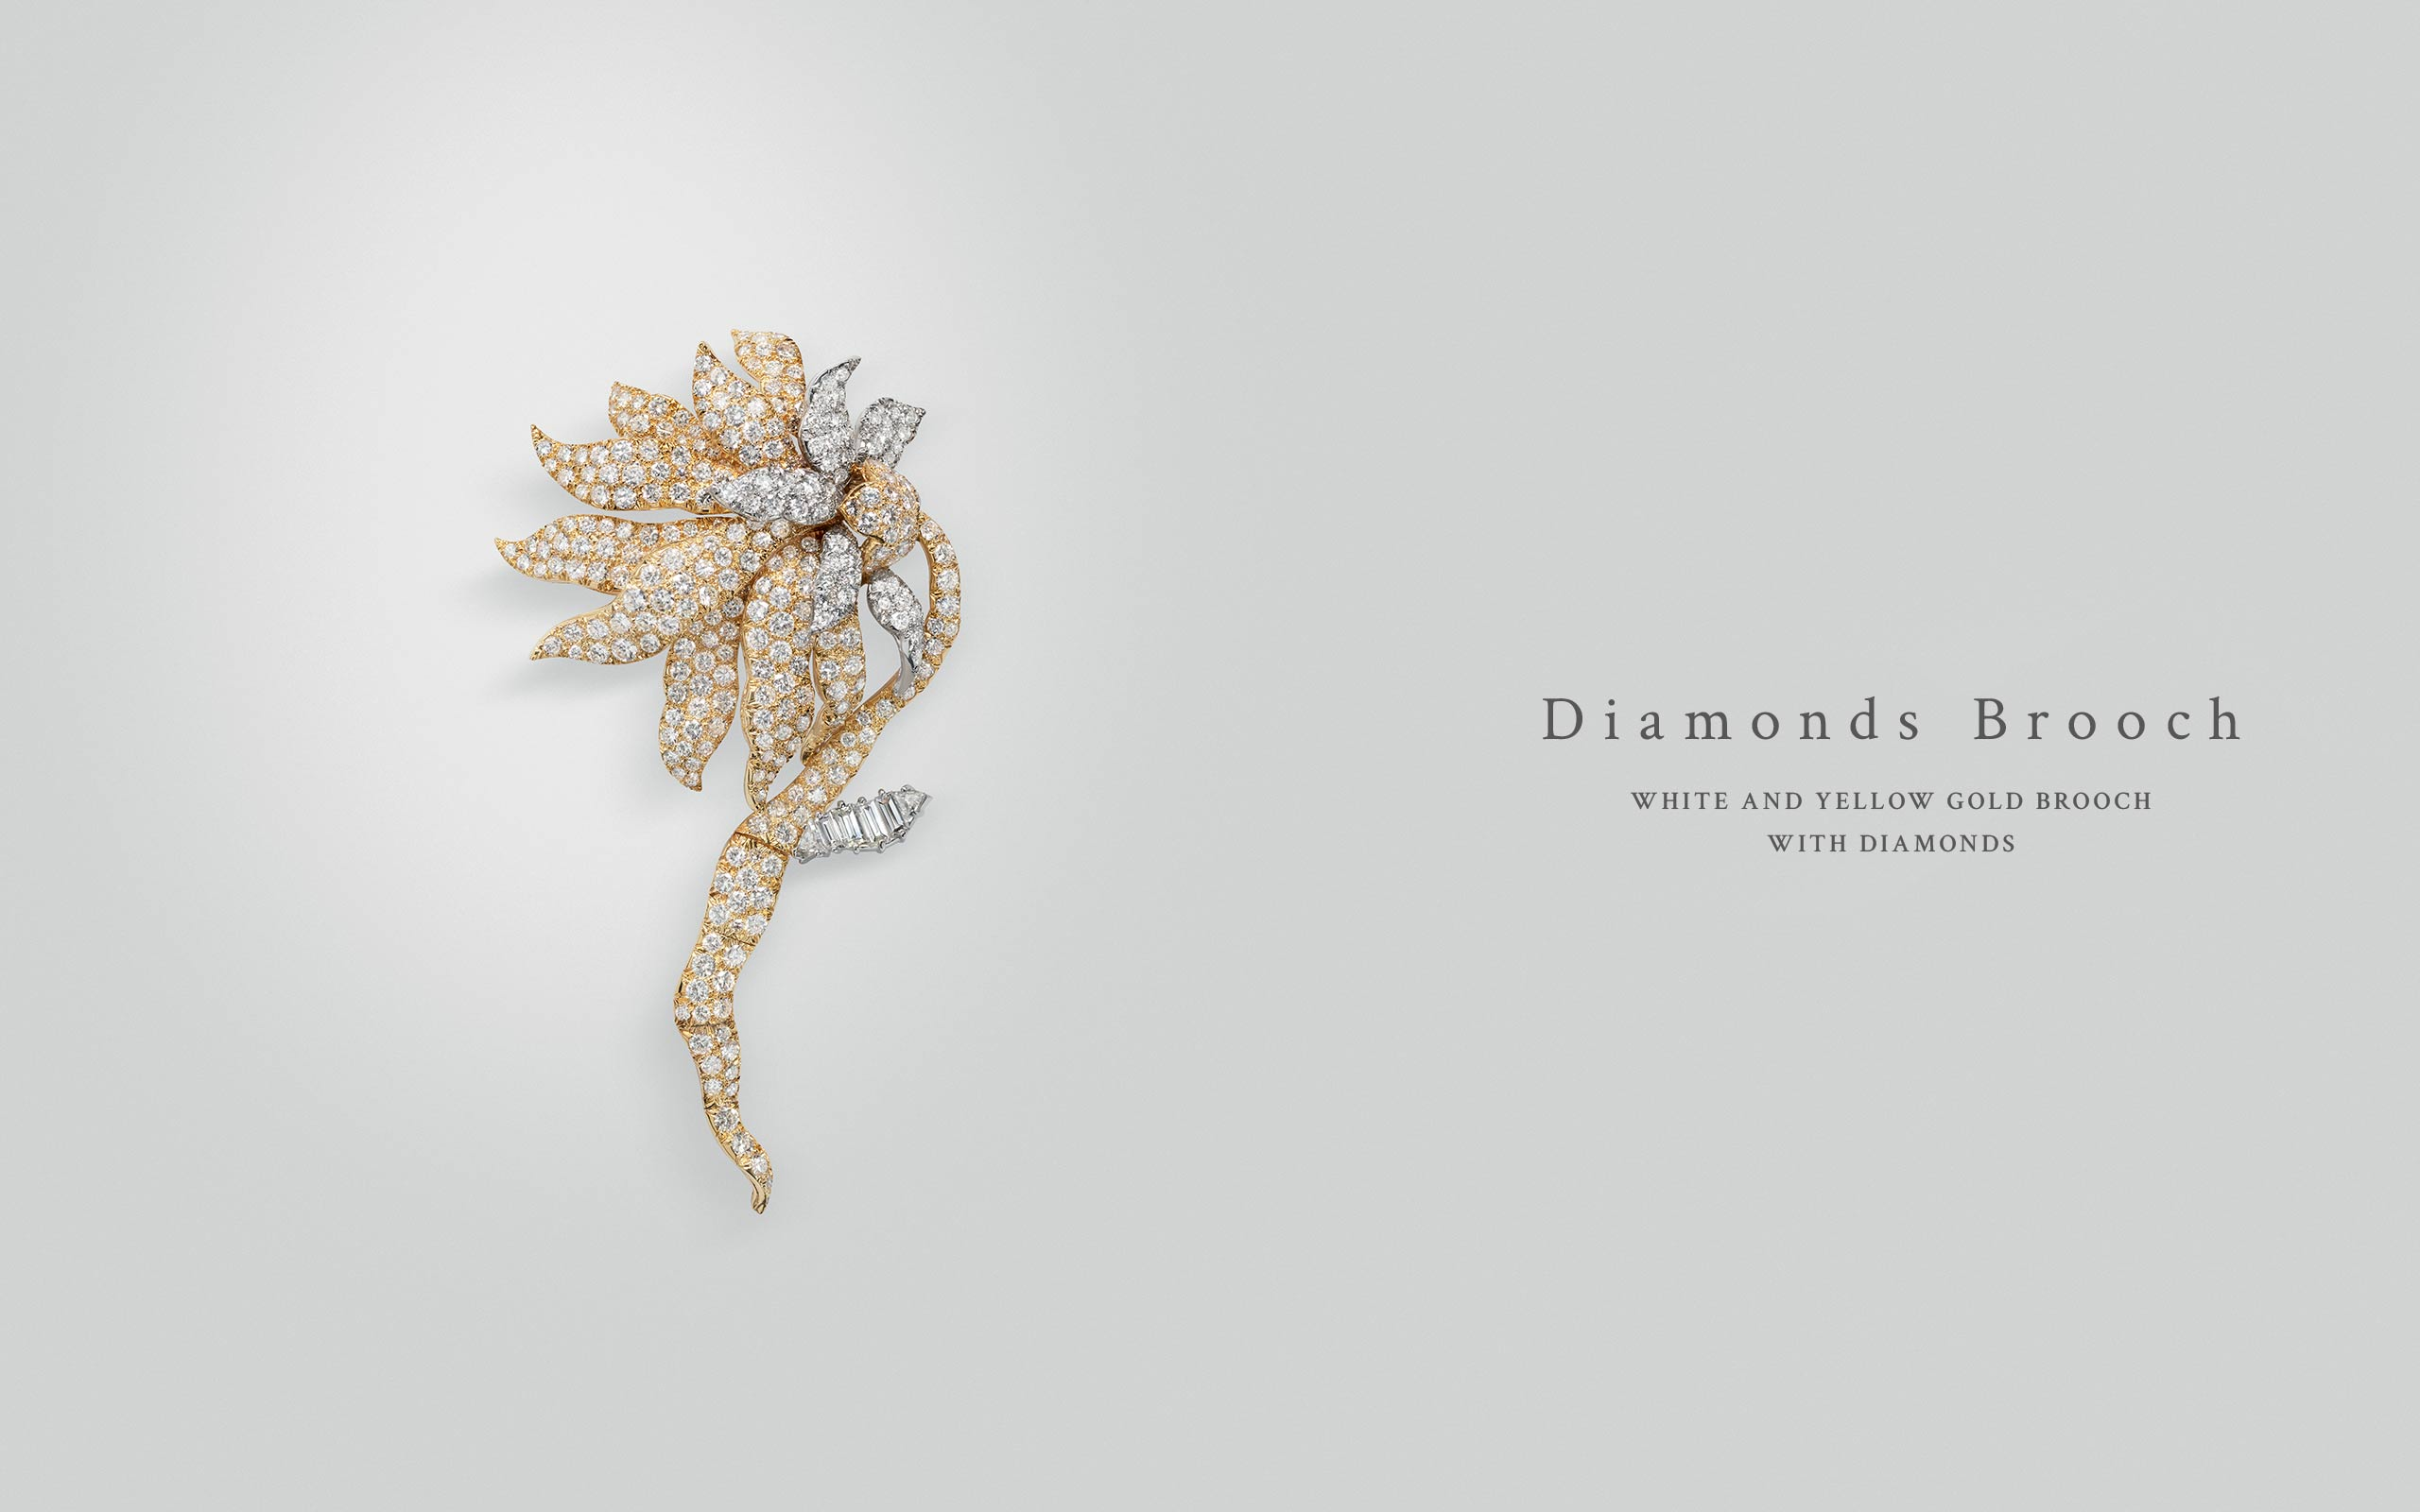 Diamonds Brooch 04 | Maria Gaspari